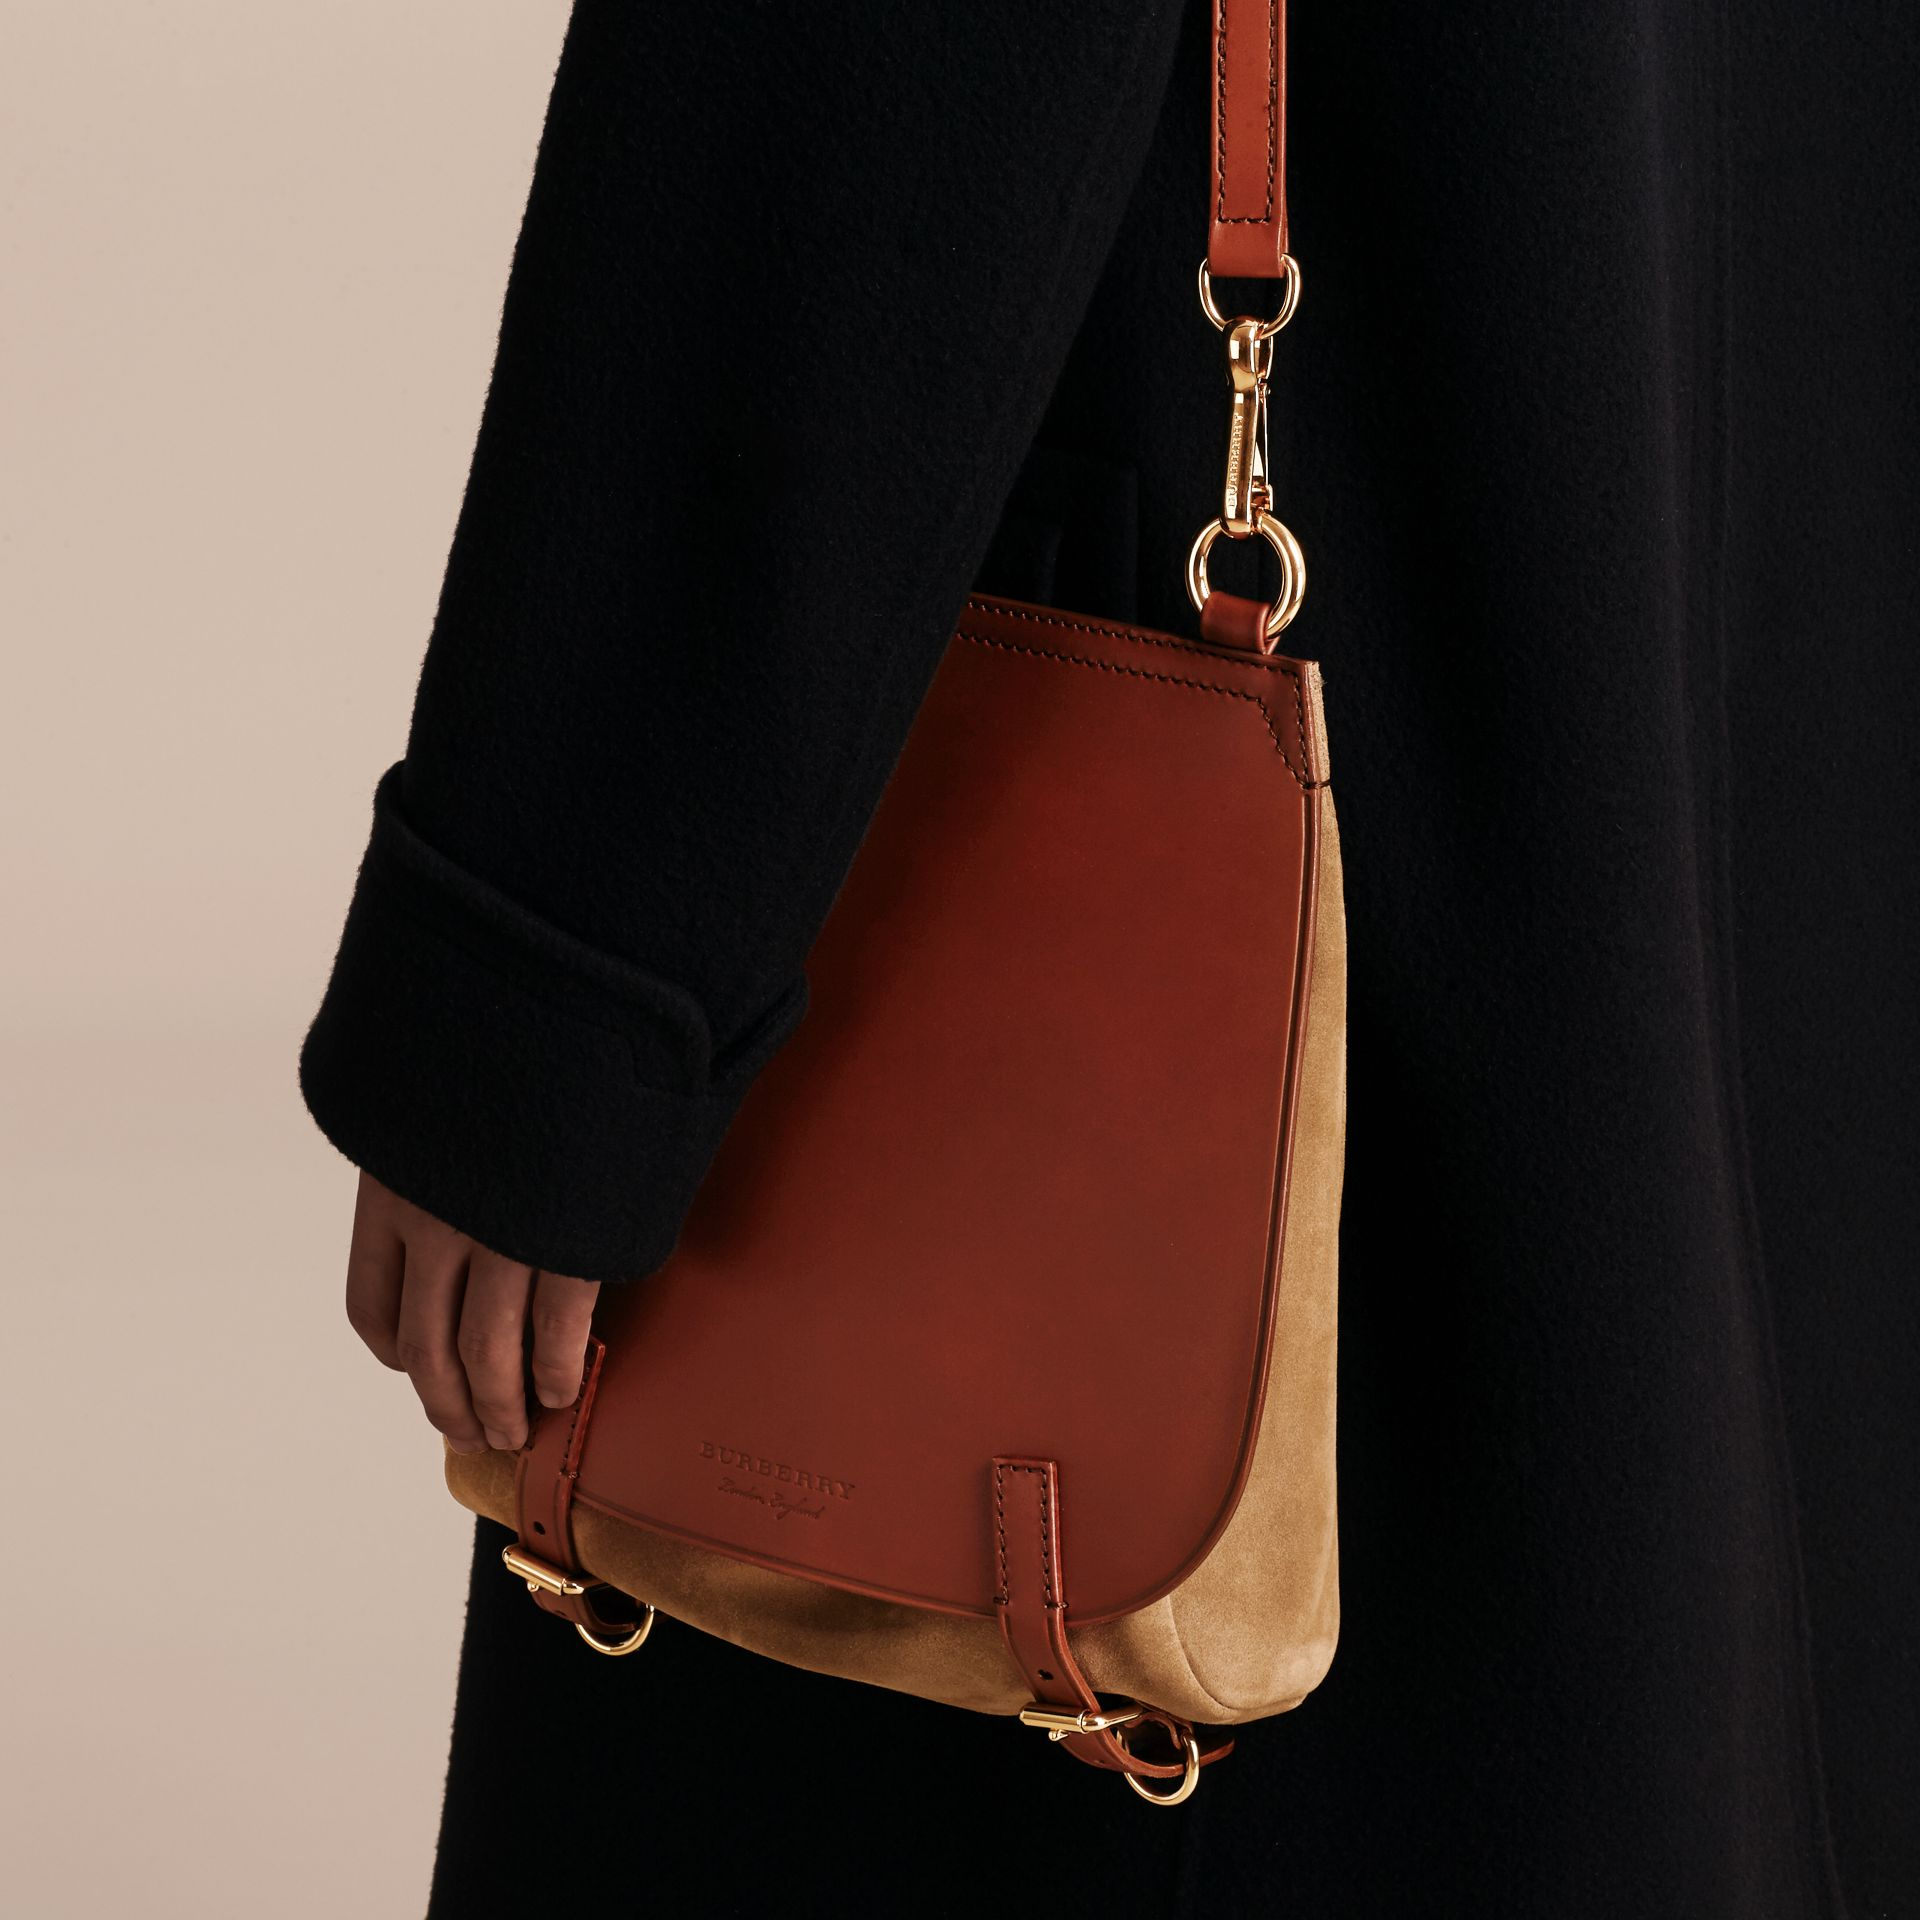 The Small Bridle Bag in Leather and Suede in Tan - Men | Burberry - gallery image 3